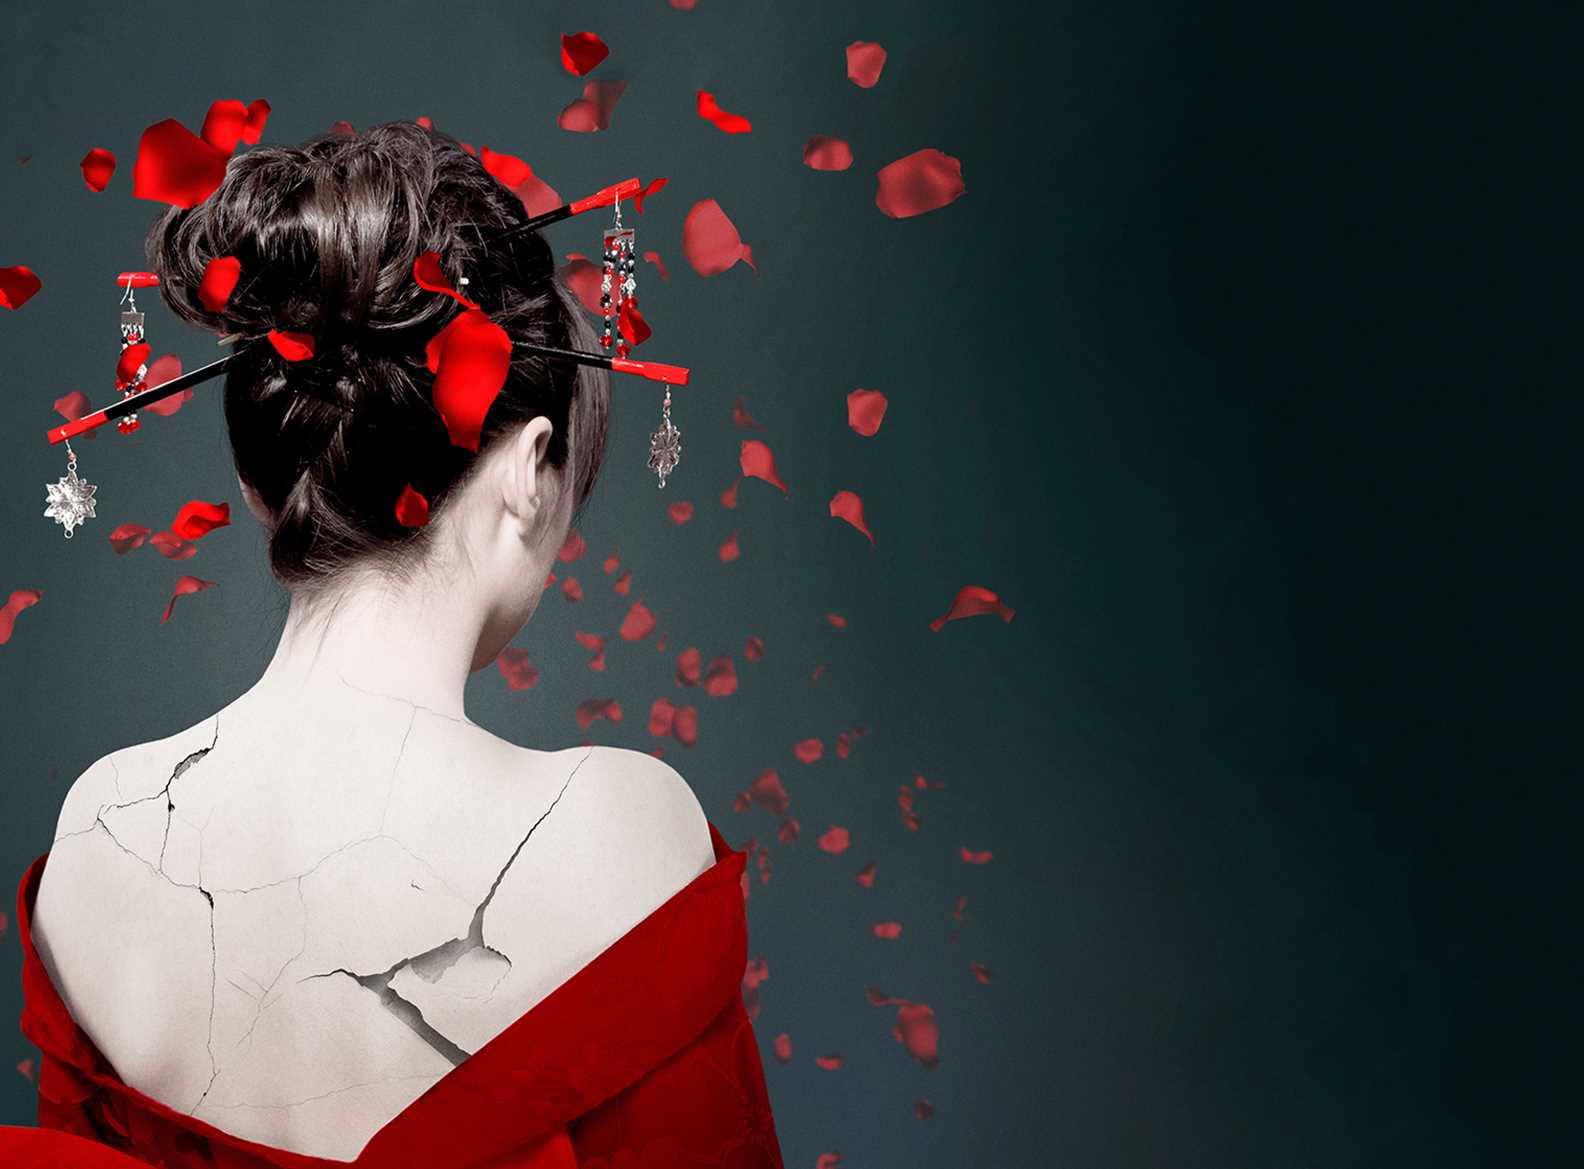 ROH Live Madama Butterfly